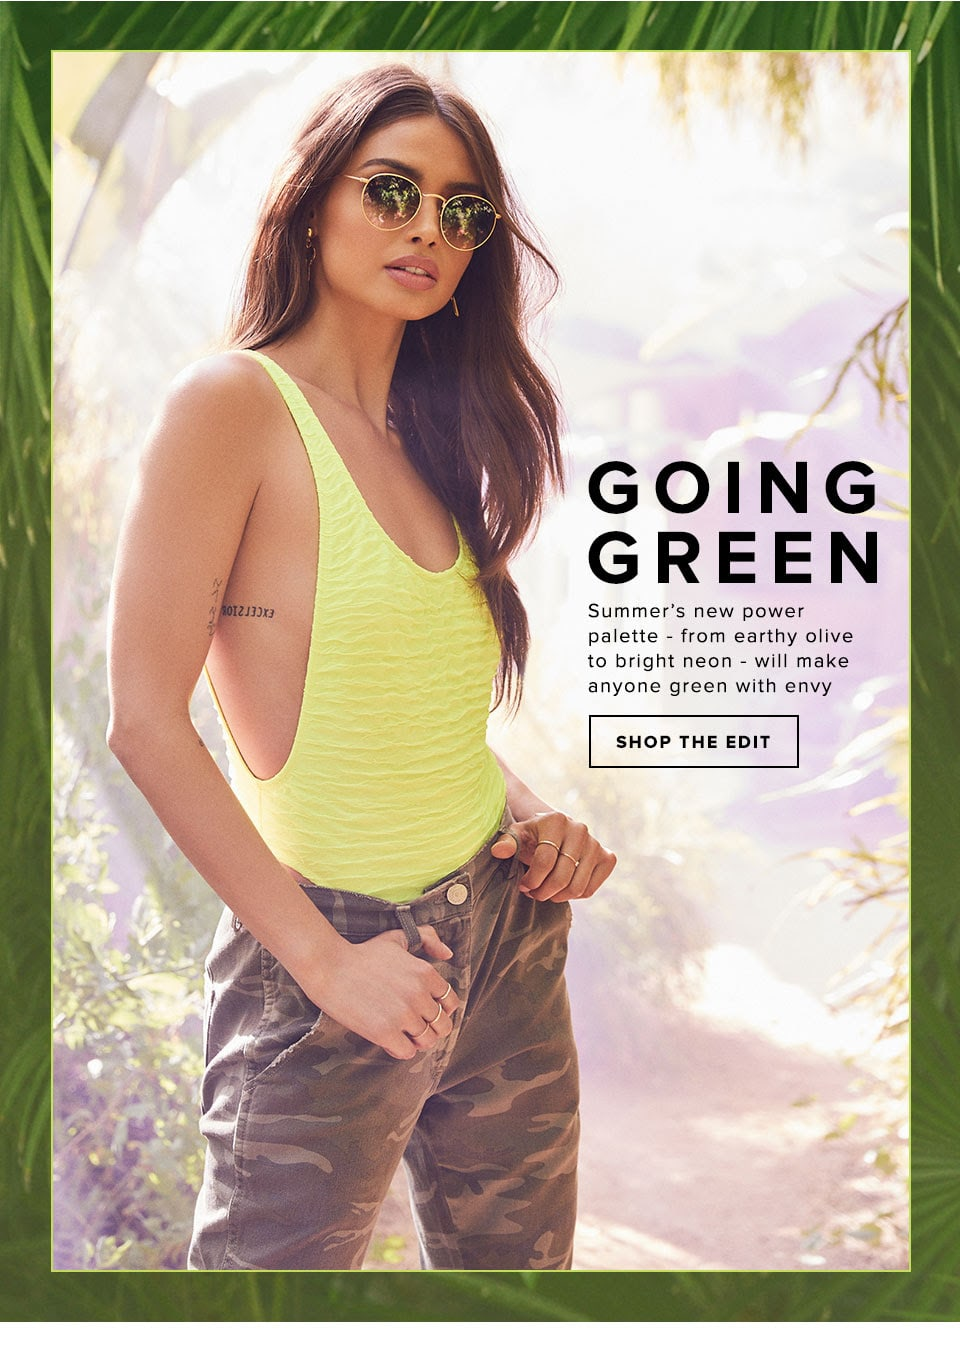 GOING GREEN. Summer's new earthy palette - from olive to camp -  will make anyone green with envy. Shop the Edit.